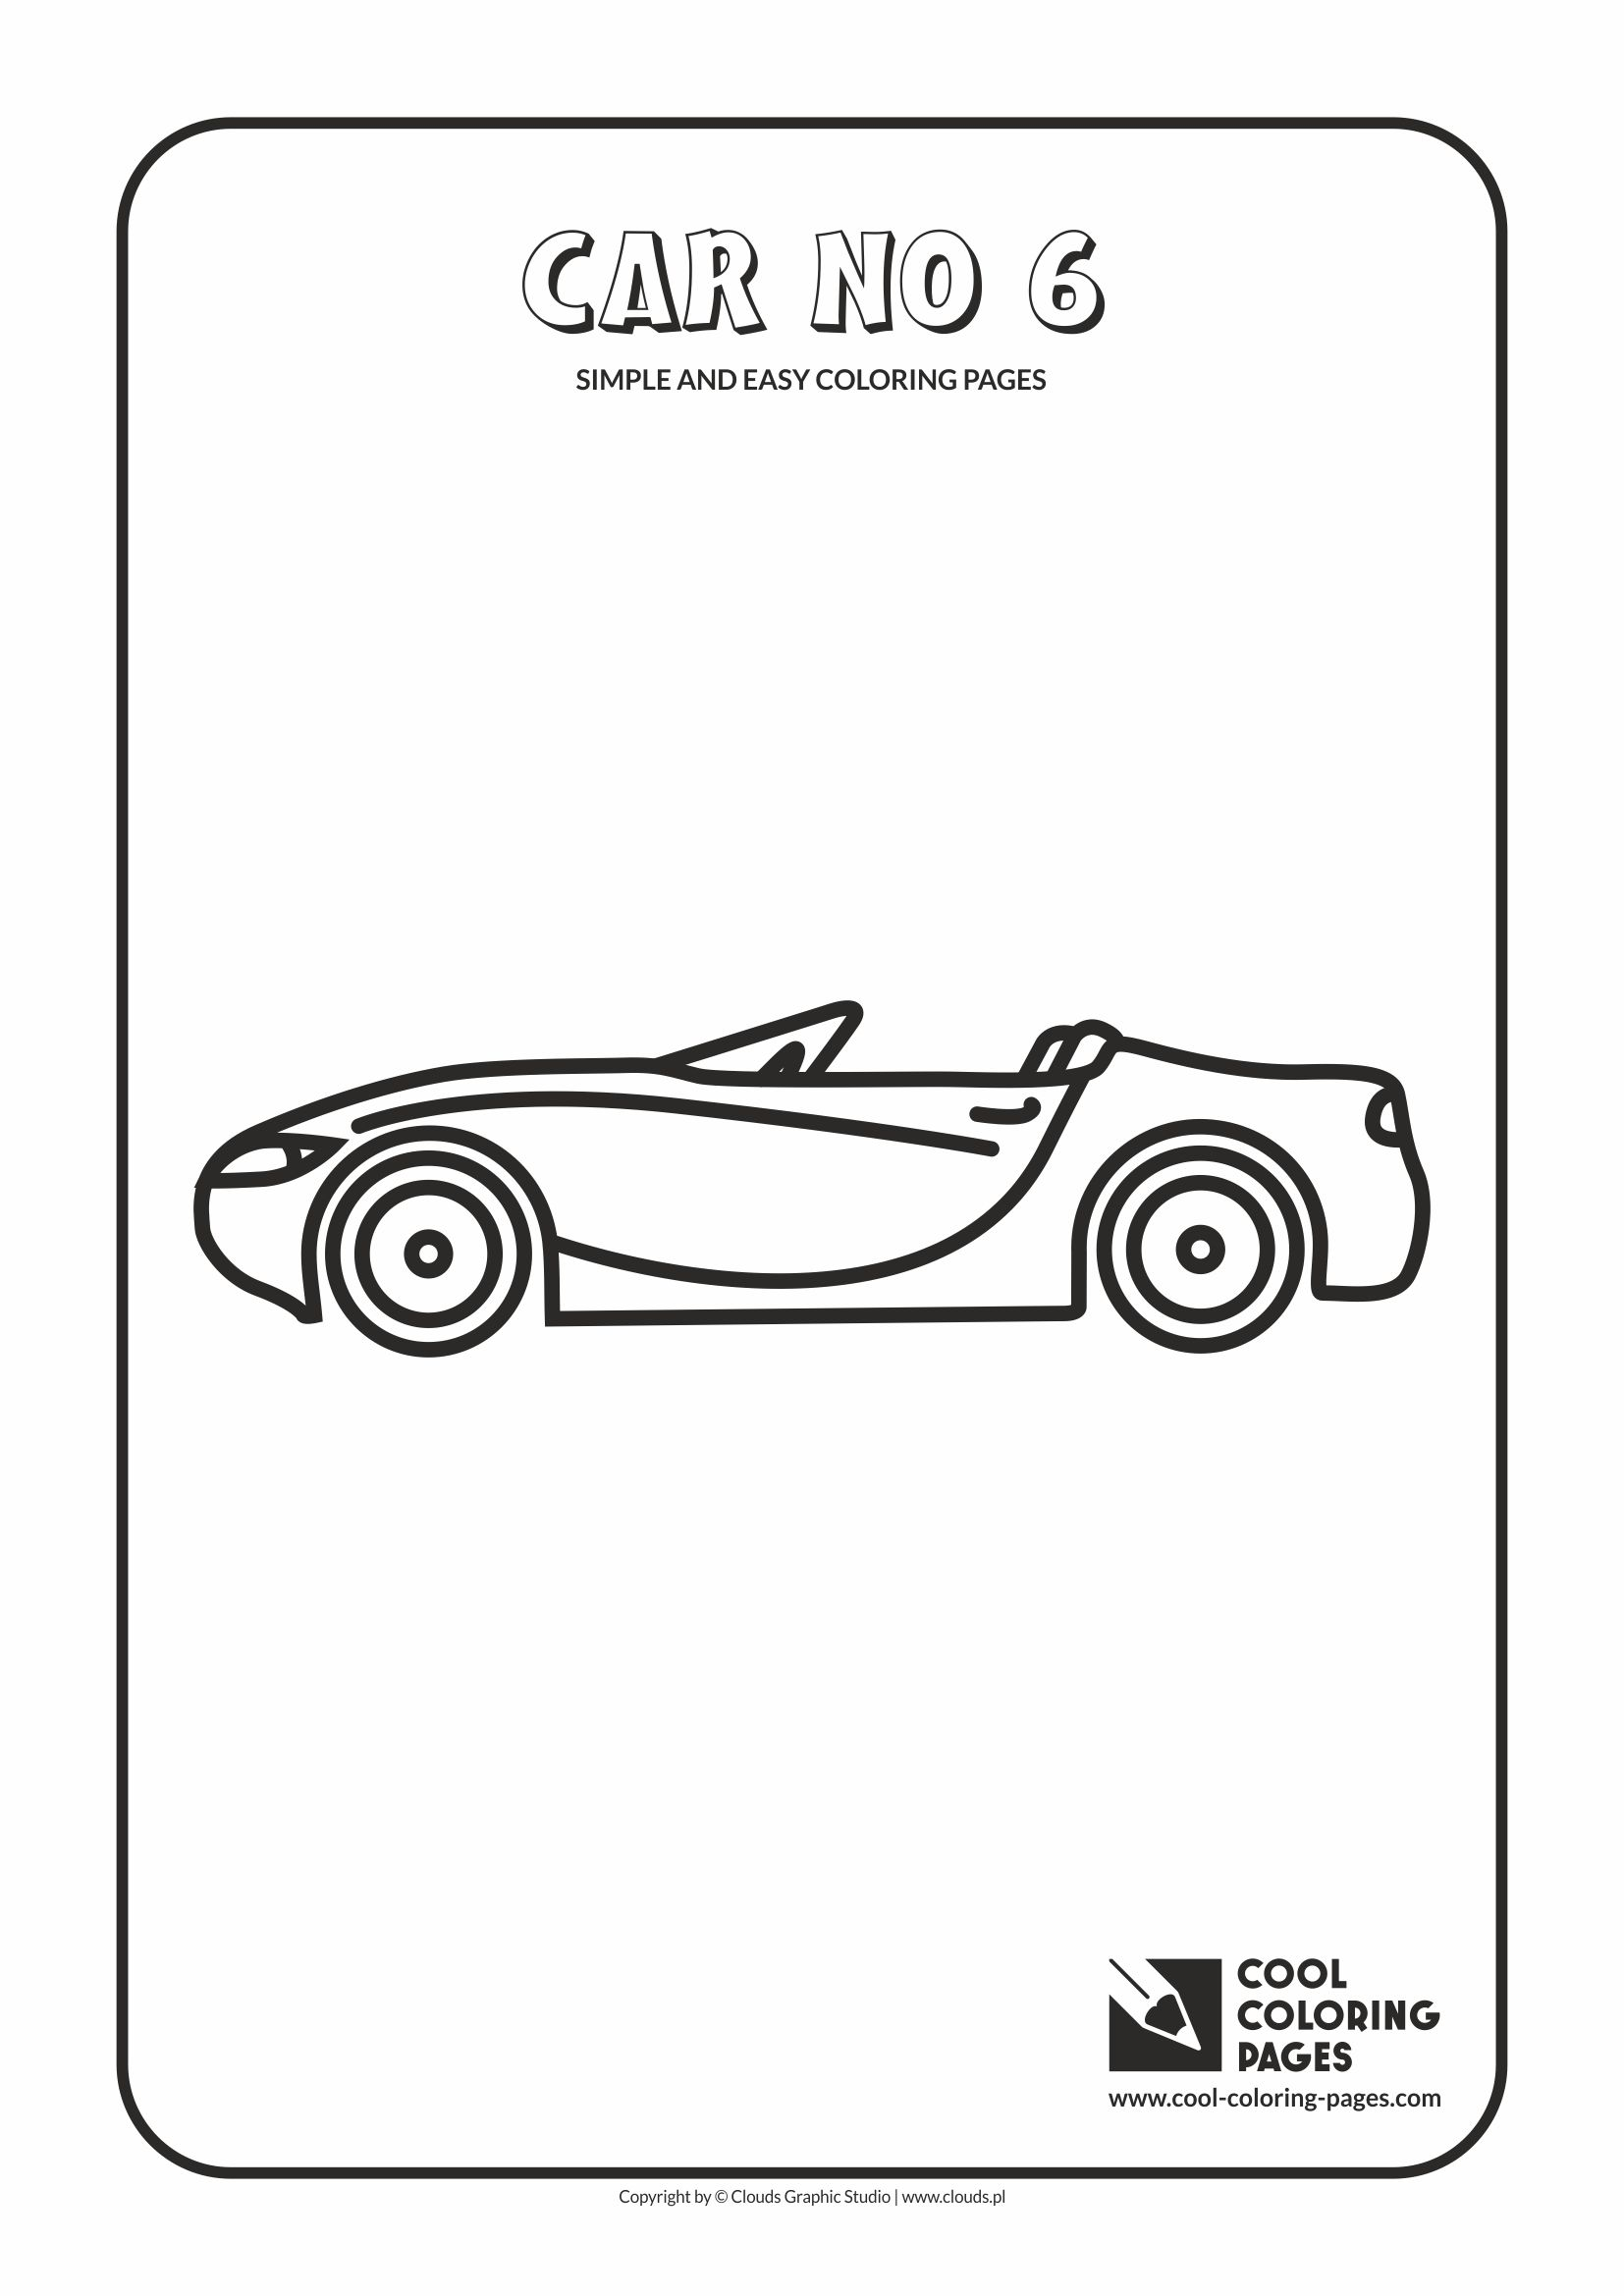 Simple and easy coloring pages for toddlers - Car no 6